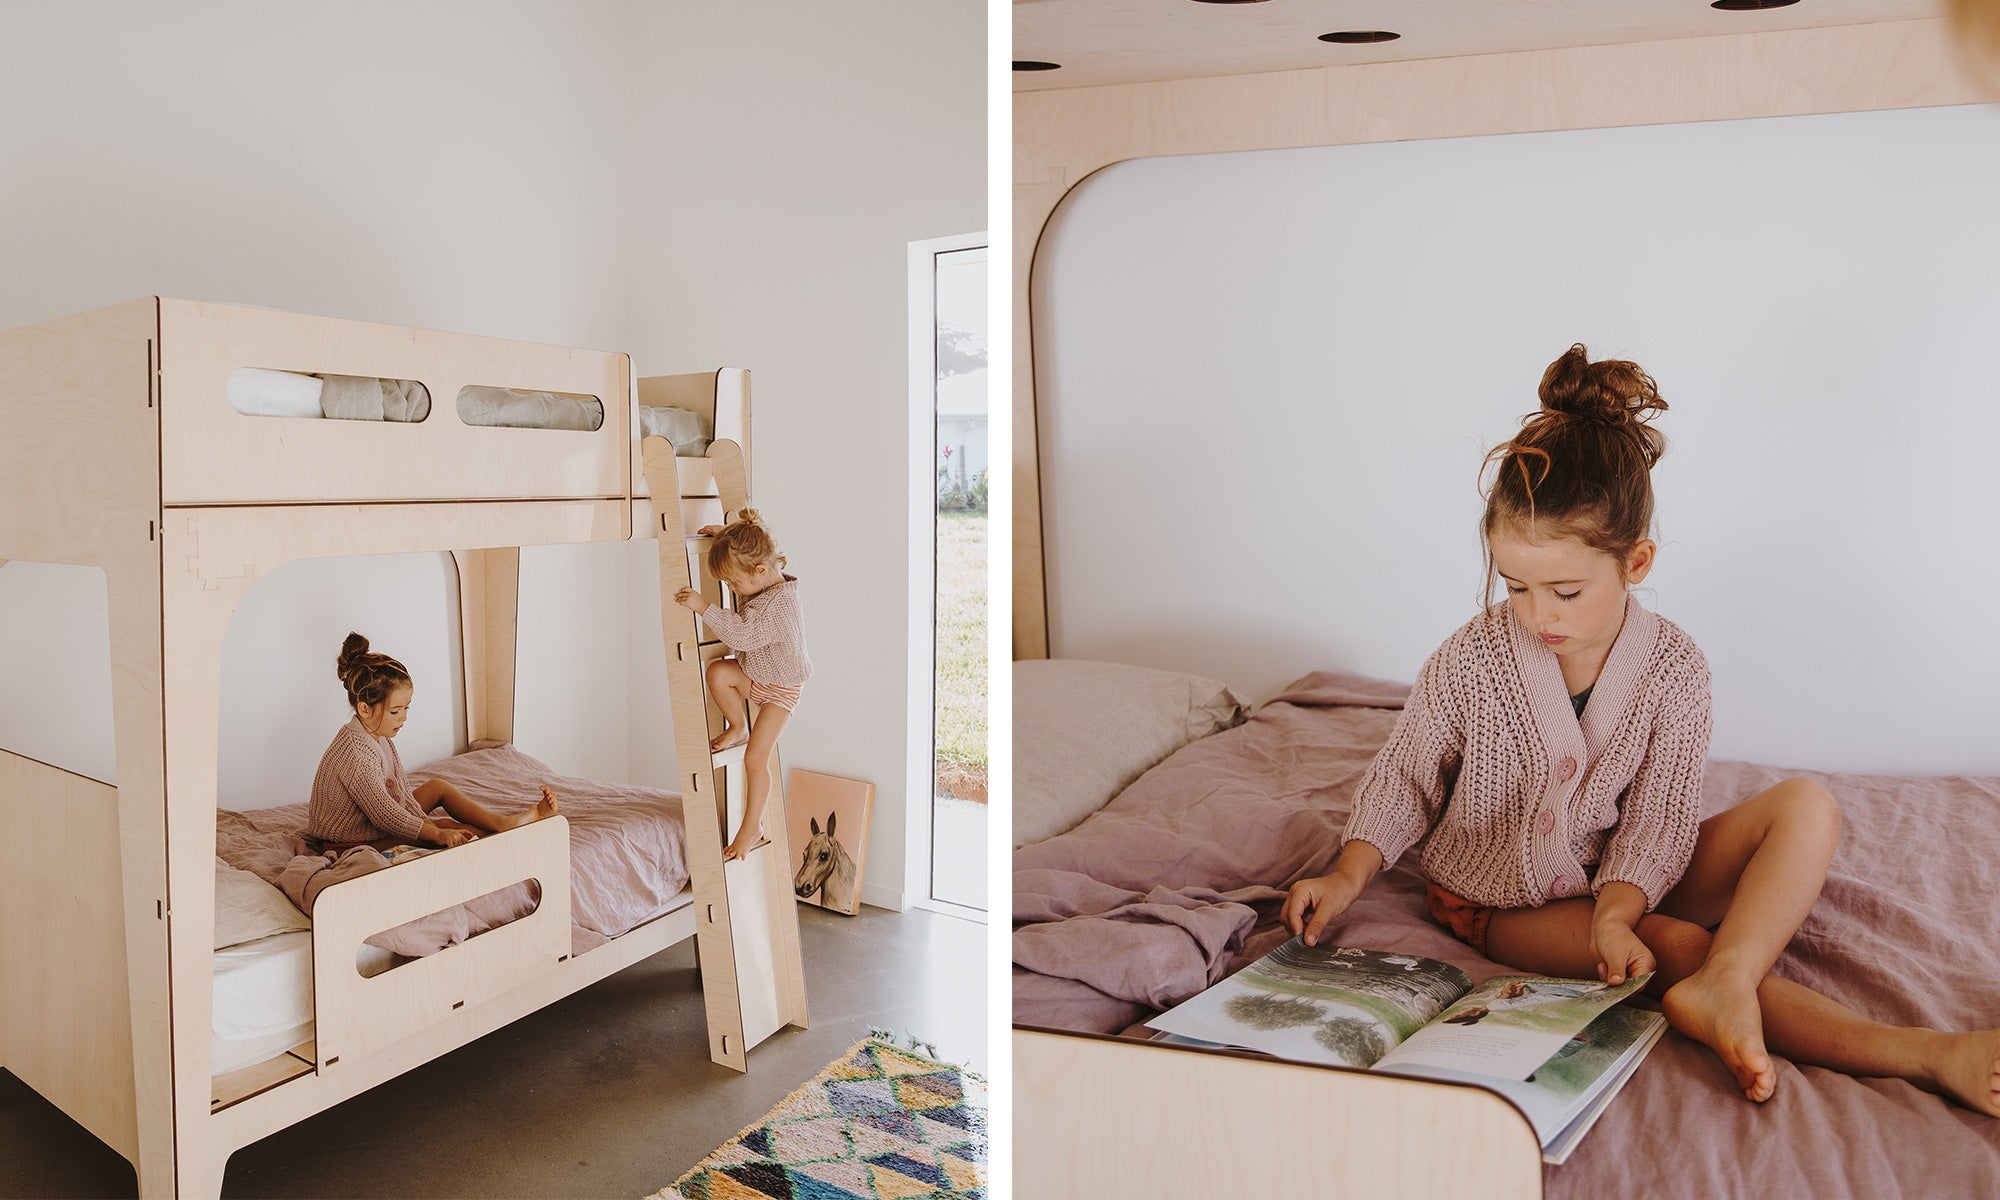 Modern Bunk Beds and Loft Beds for Small Space Living & Modern Bunk Beds and Loft Beds for Small Space Living \u2013 Plyroom